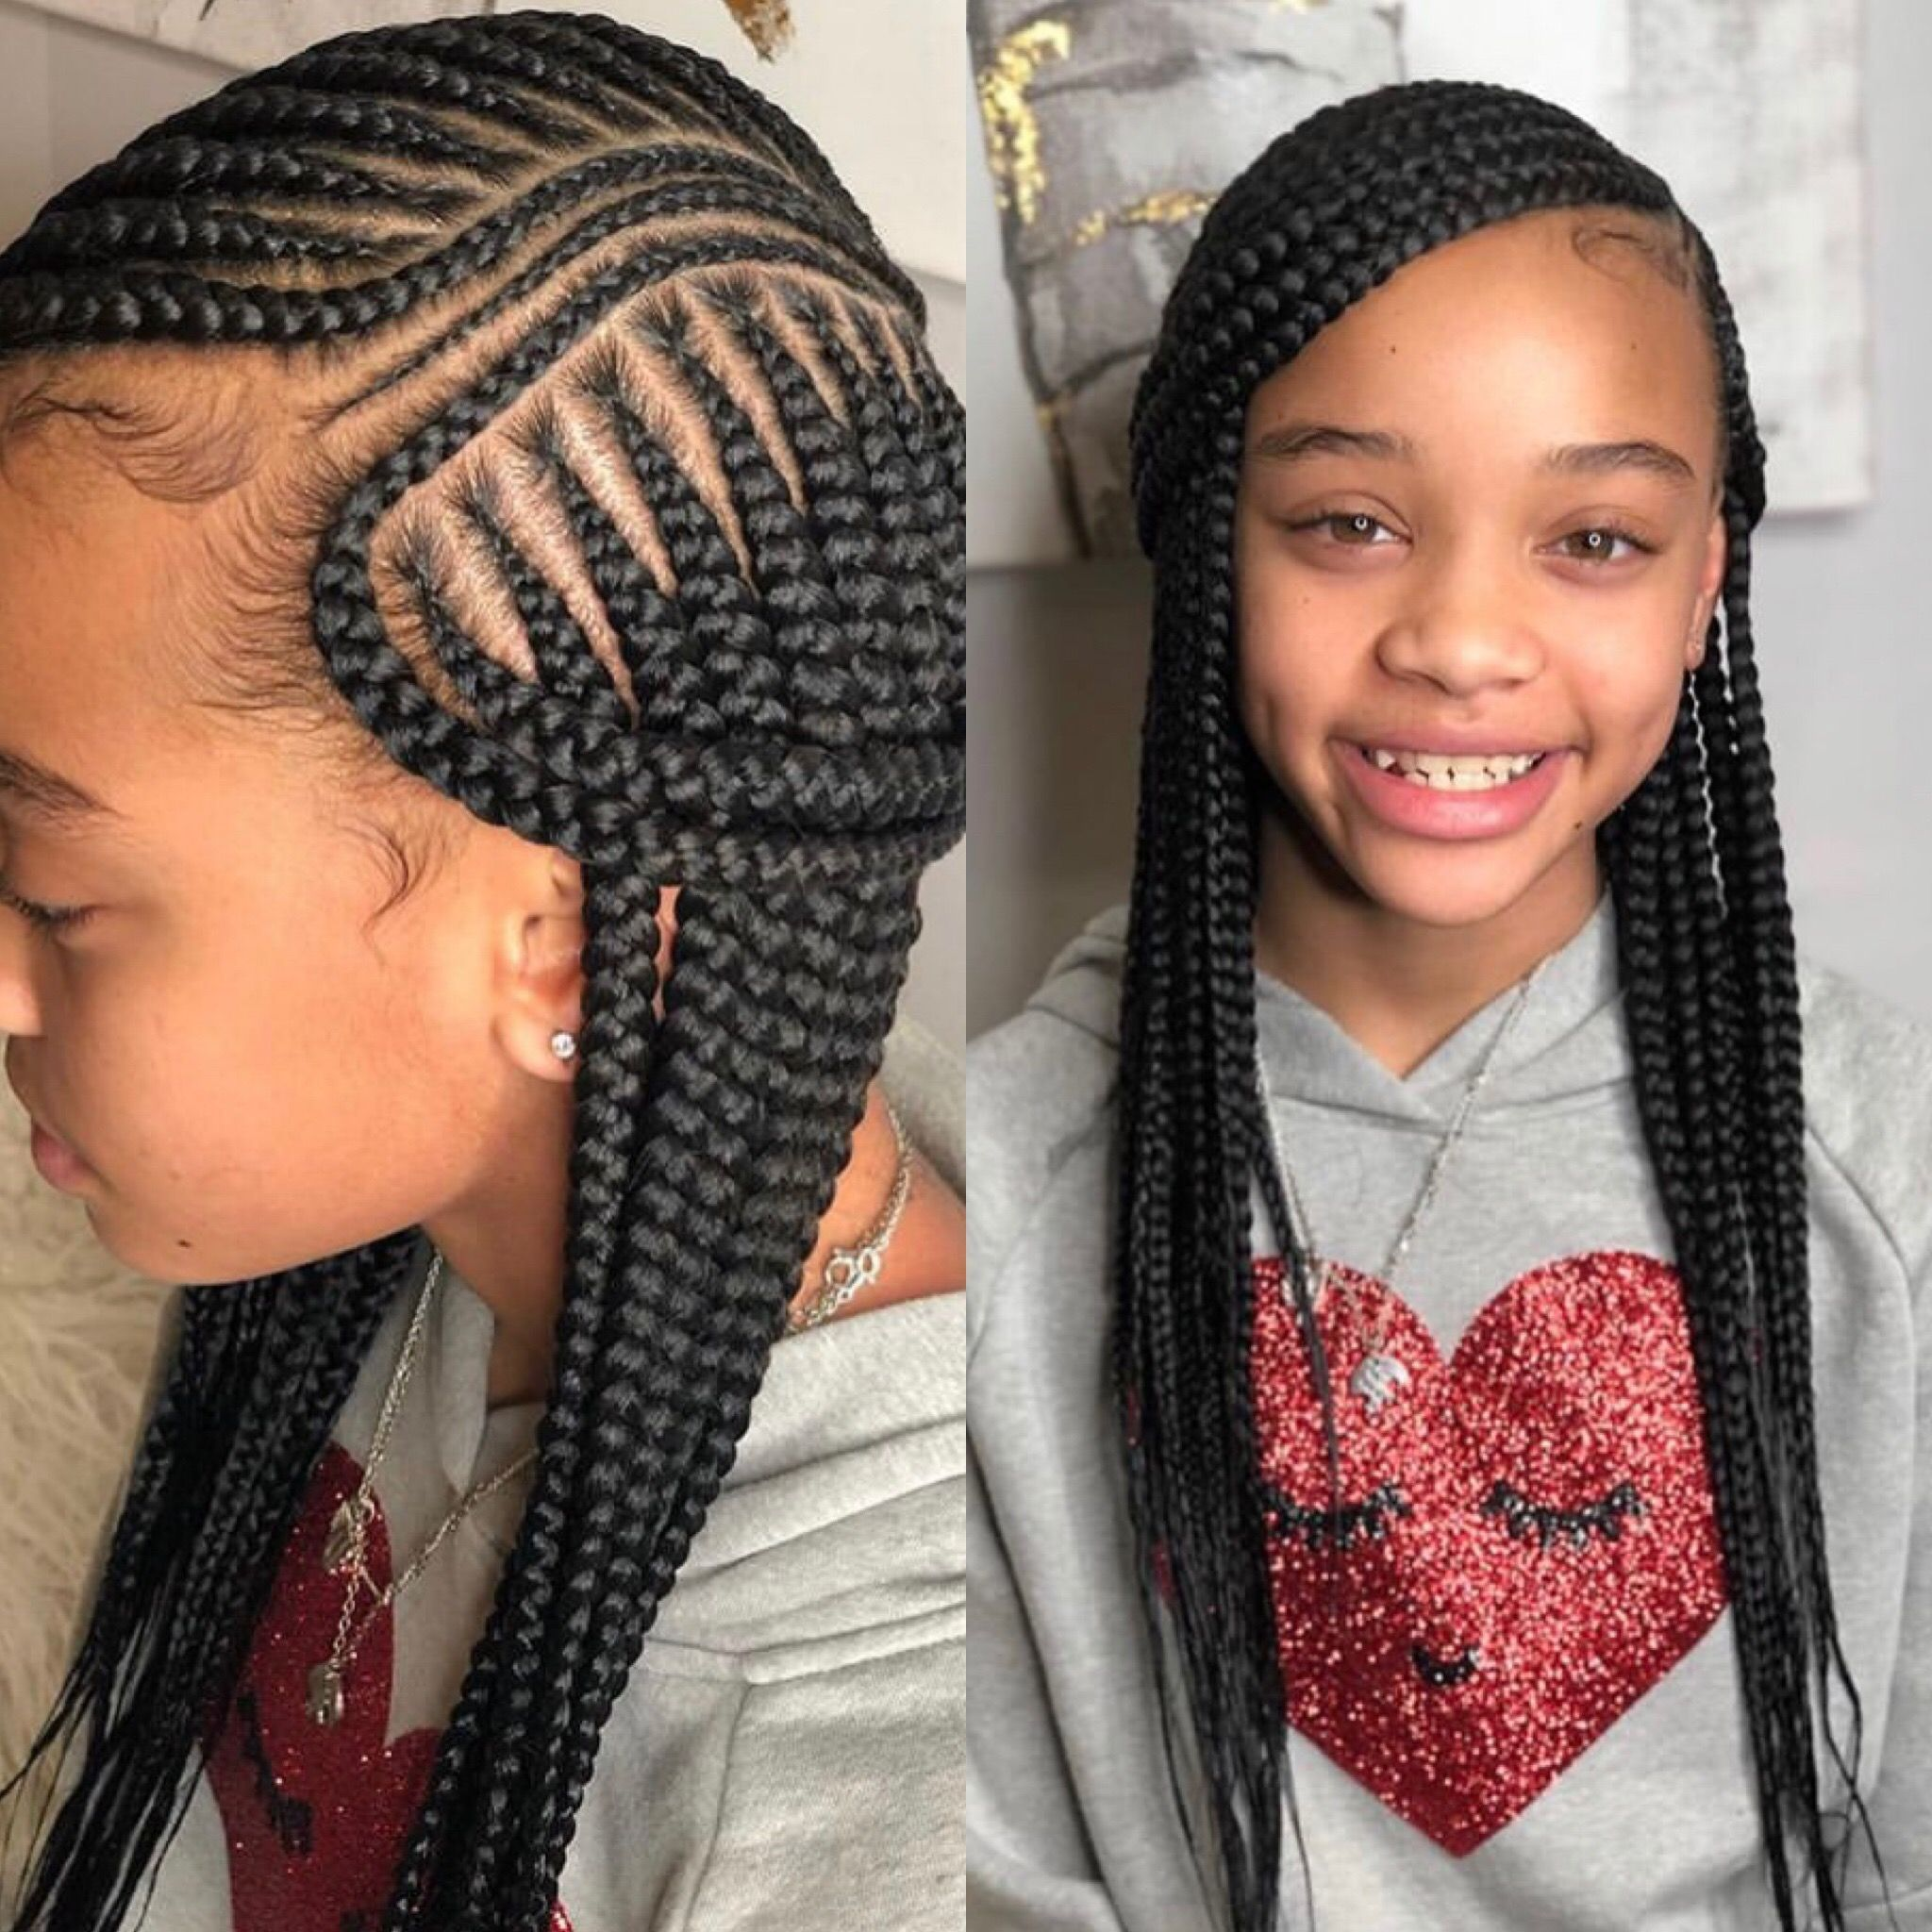 Hairstyle Trends 26 Cutest Braid Hairstyles For Kids Photos Collection In 2020 Kids Braided Hairstyles African Braids Hairstyles Black Kids Hairstyles